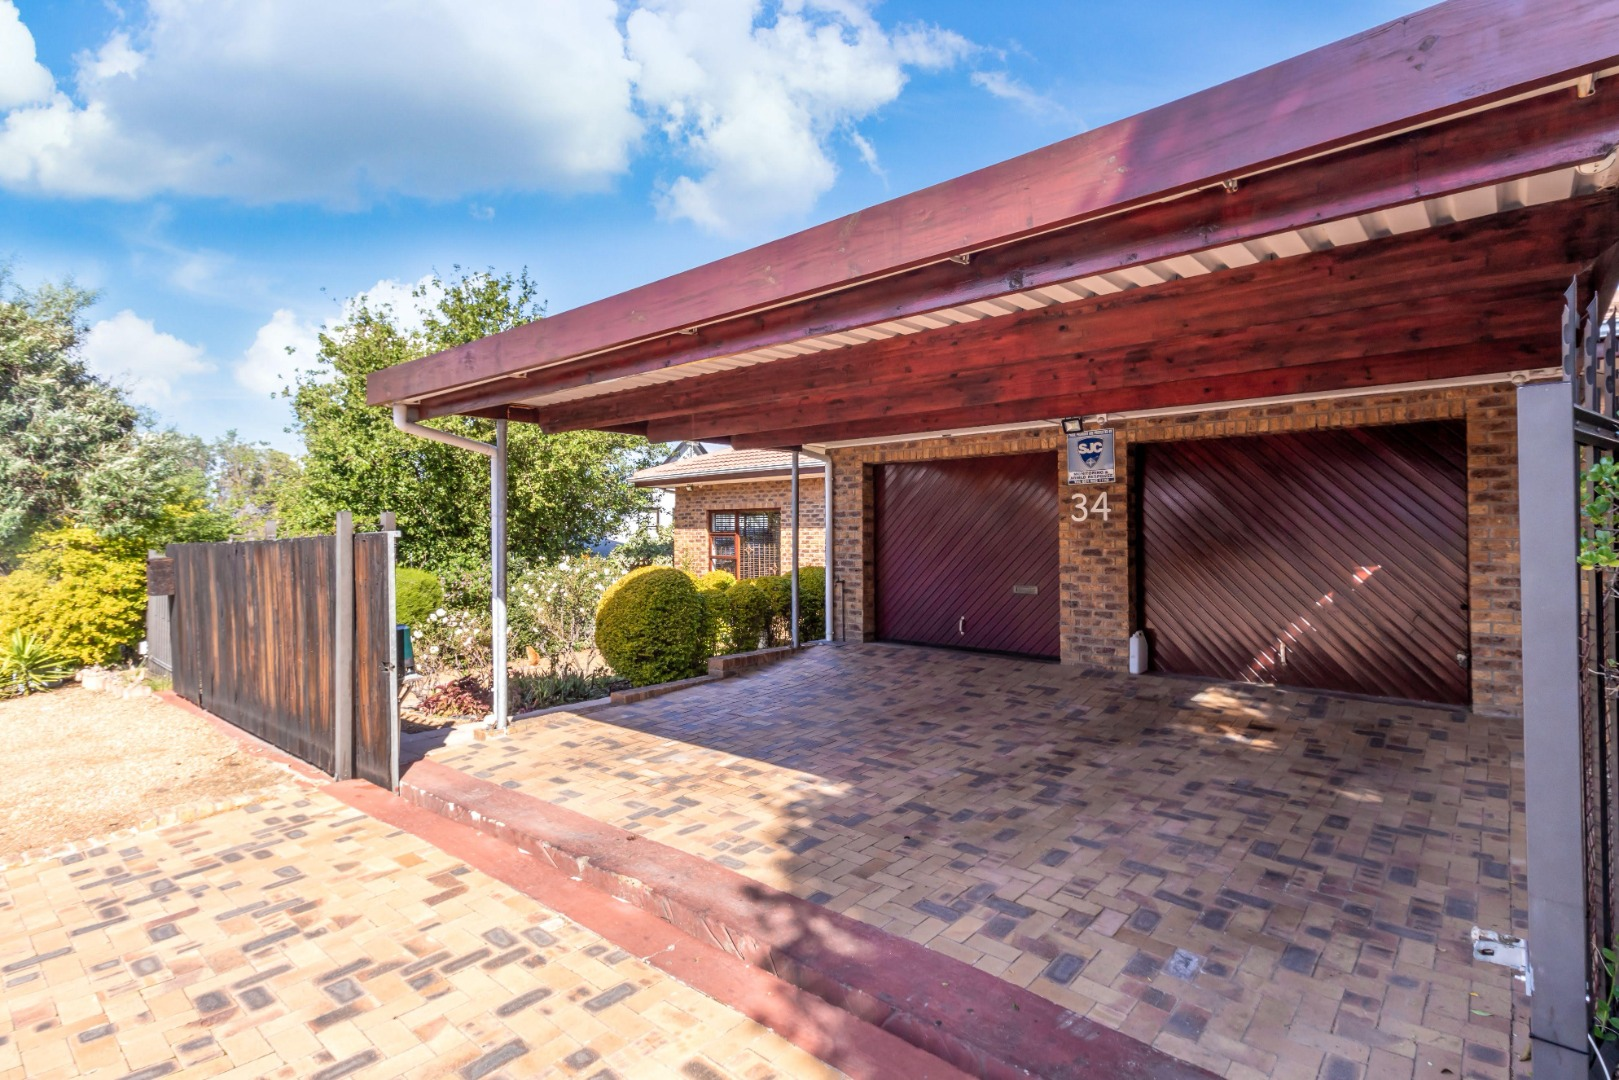 3 bedroom house in vredekloof heights re max